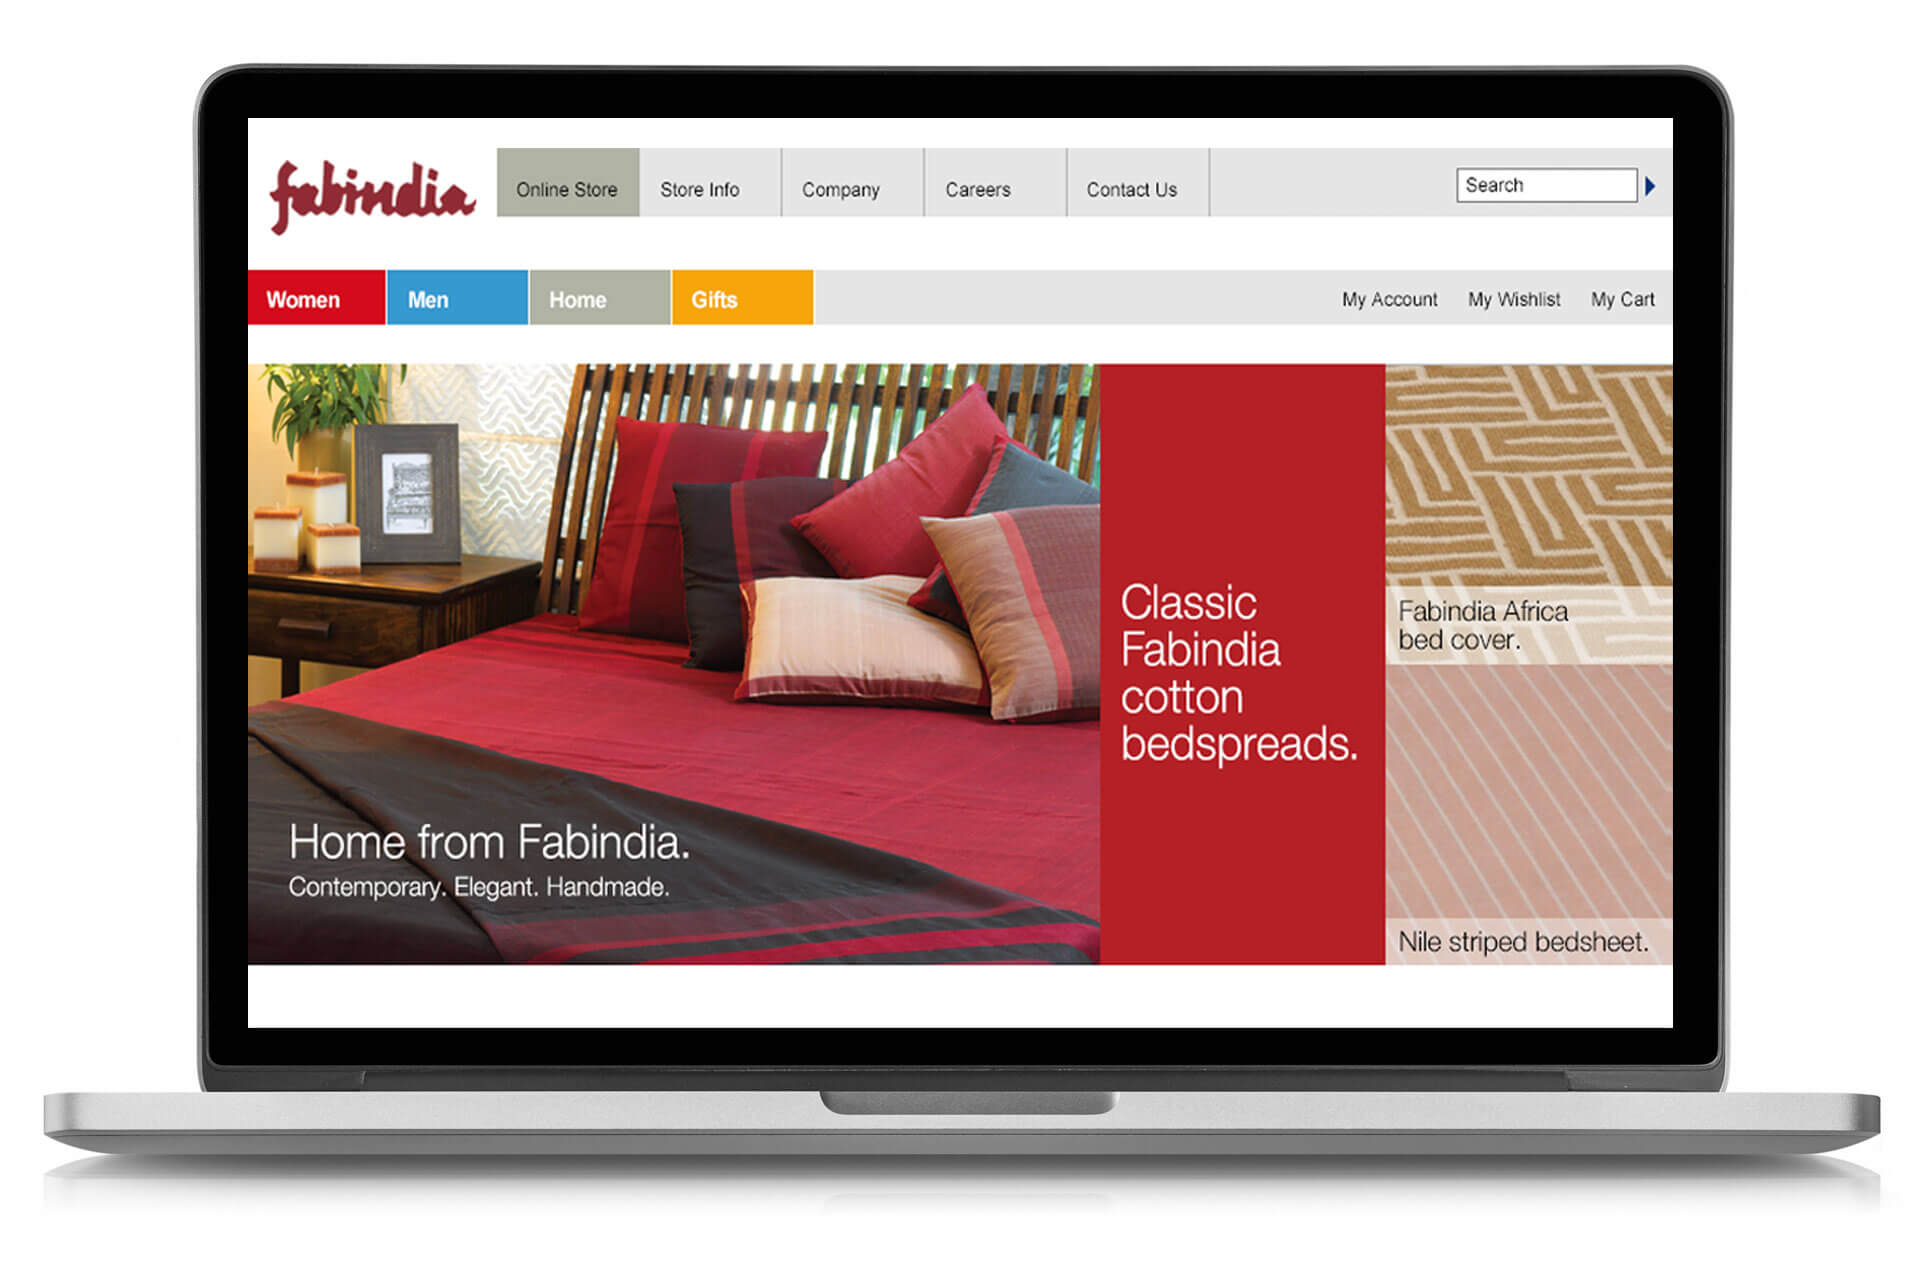 Home product range from the Fabindia online store